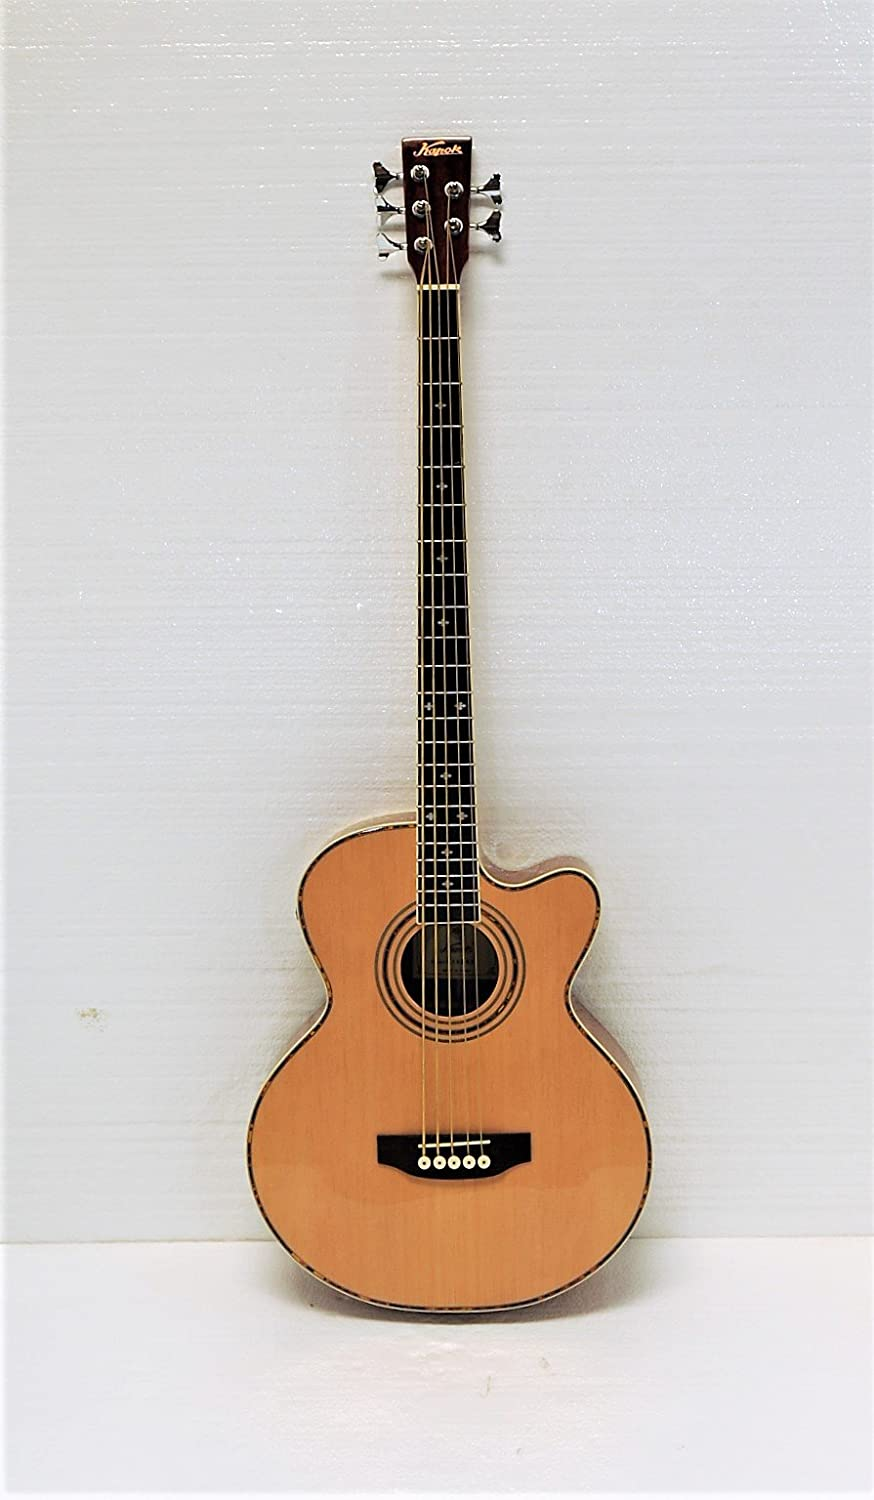 5 String Cutaway Acoustic Electric Bass, Spruce Top Kapok KAB-165F-N